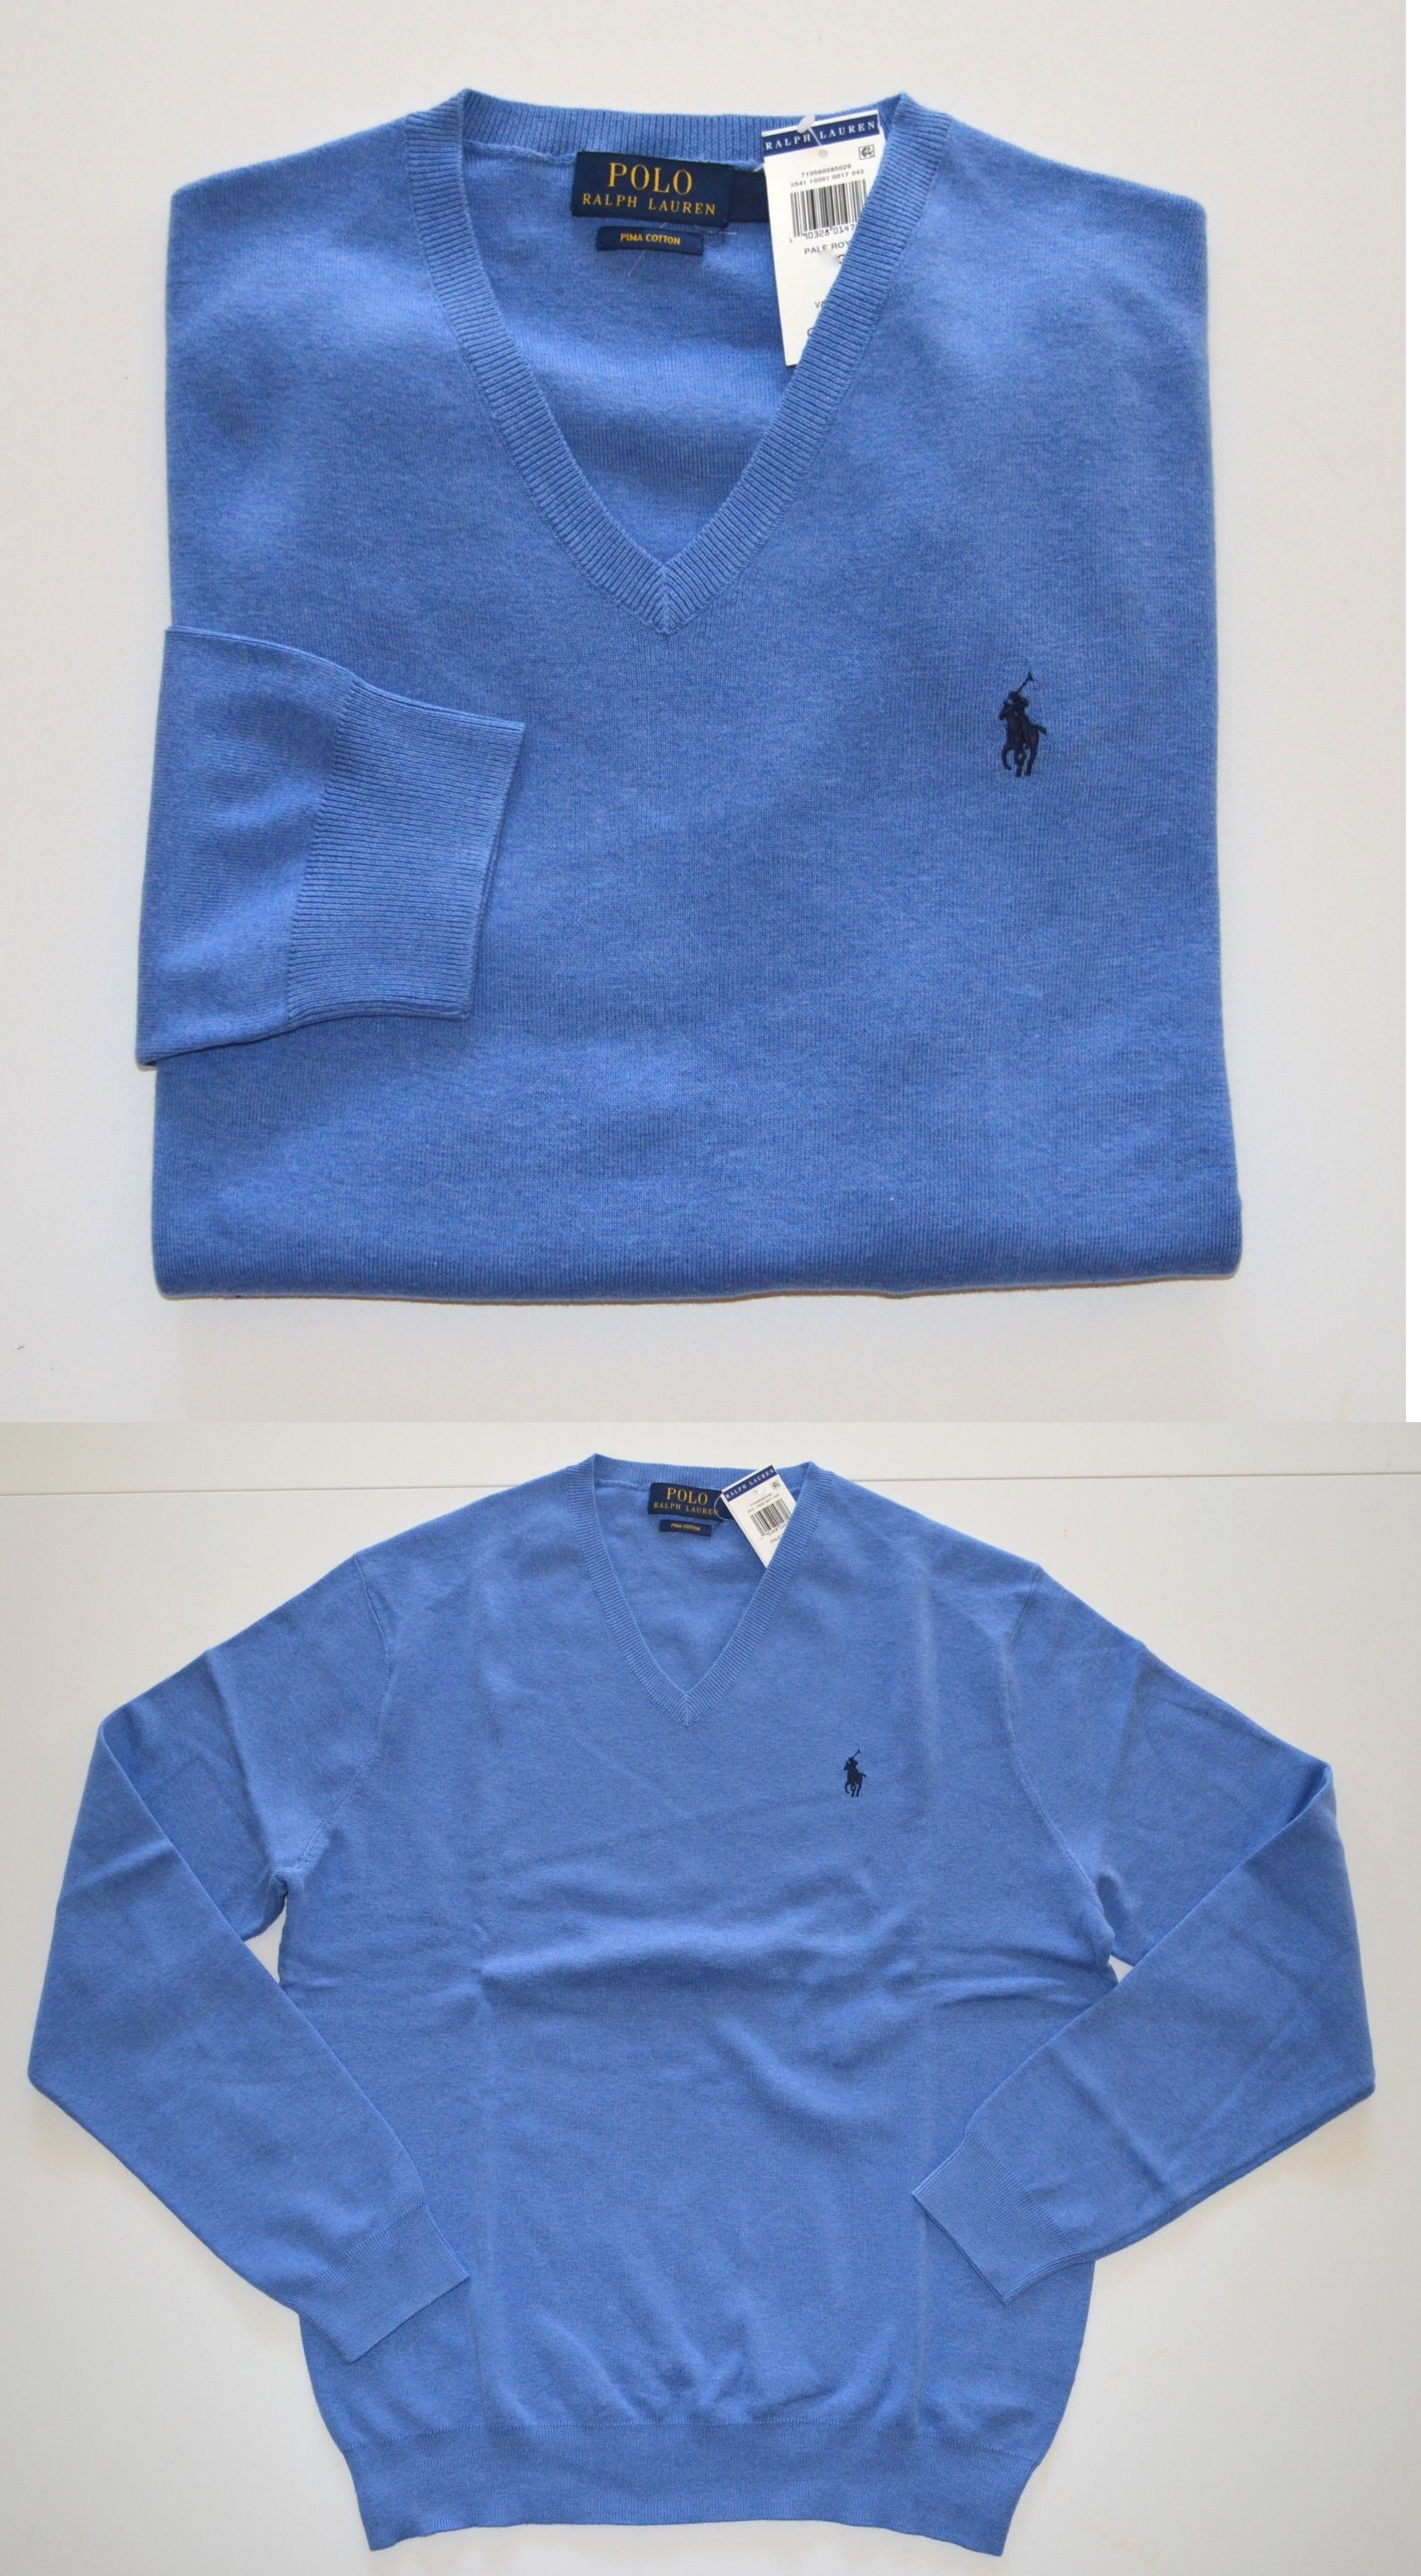 Sweaters 11484: New Men S Polo Ralph Lauren V-Neck Pullover Sweater, Blue, L, Large -> BUY IT NOW ONLY: $49 on eBay!